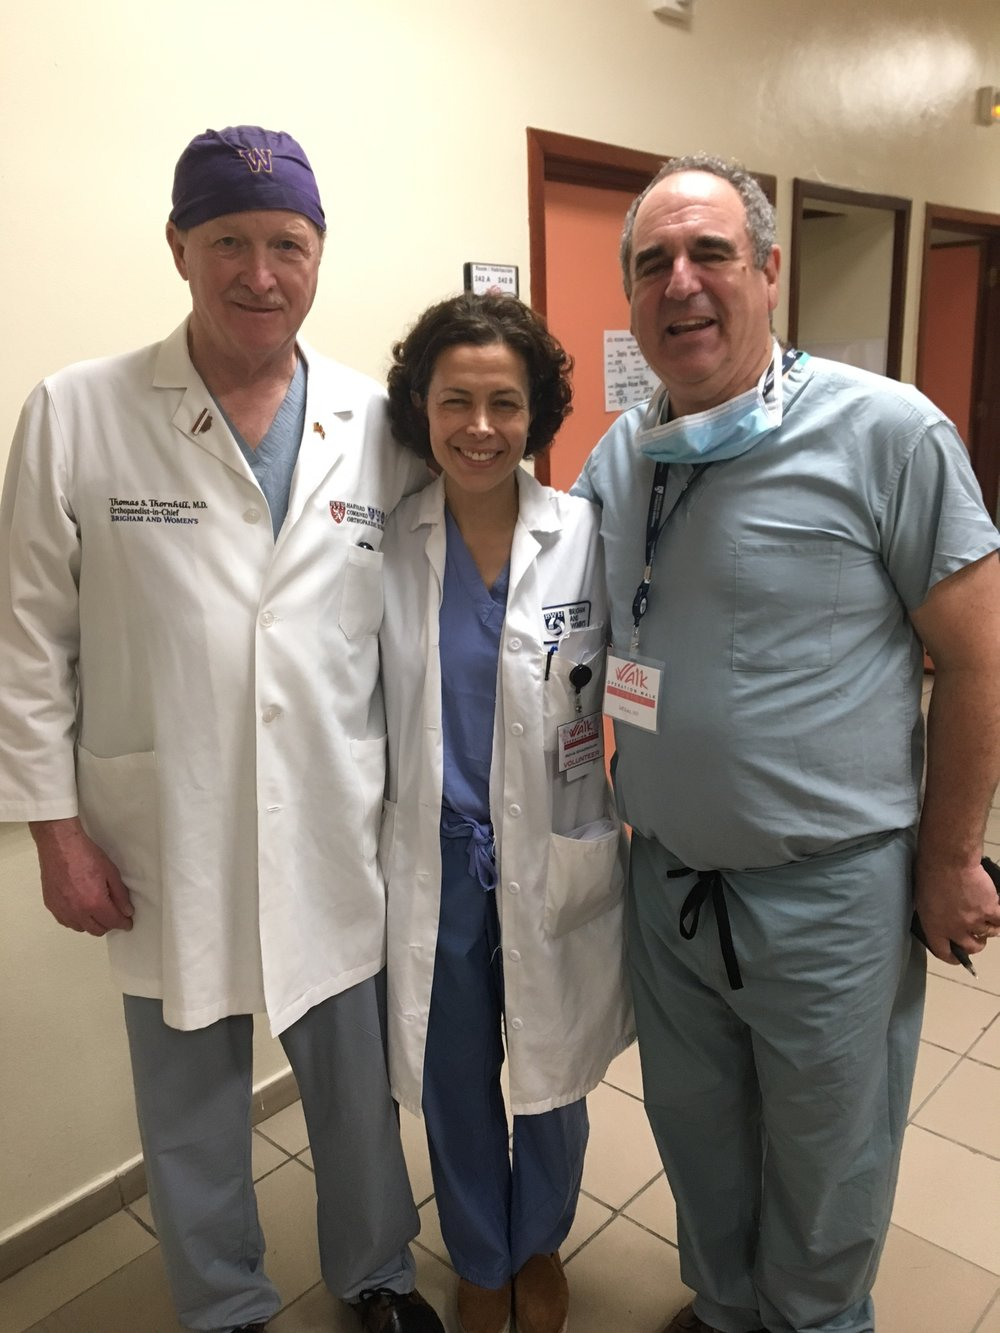 Thank you to our Chief Executive Officer Dr. Thomas Thornhill, Chief Operating Officer Roya Ghazinouri, and Chief Internist Dr. Jeffrey Katz.